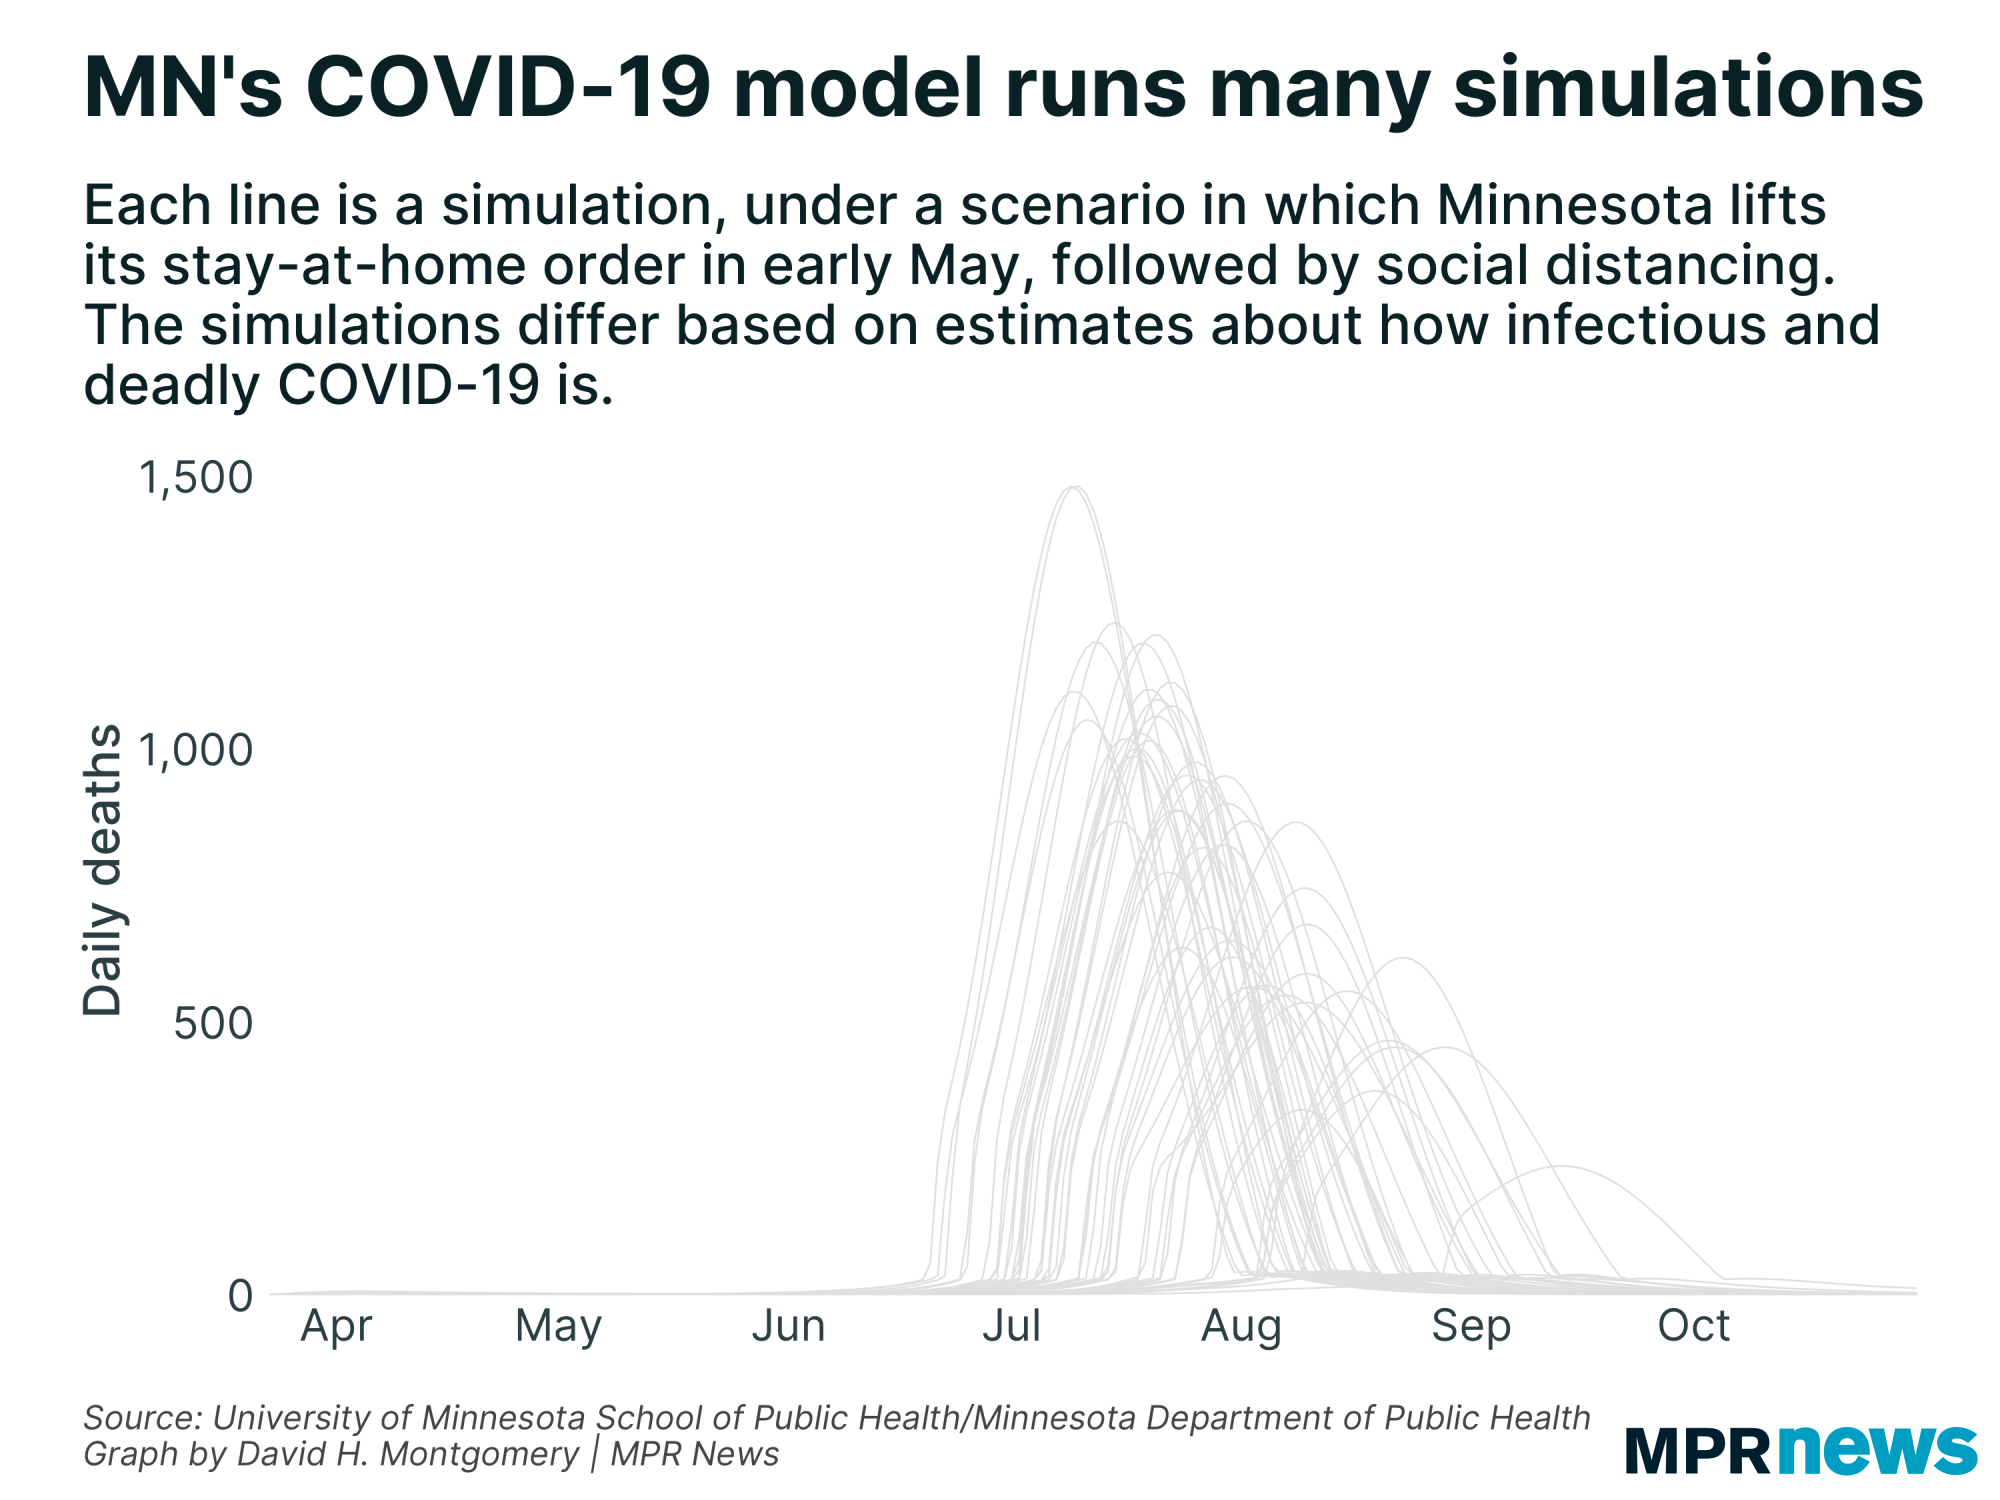 50 different simulations from Minnesota's COVID-19 model